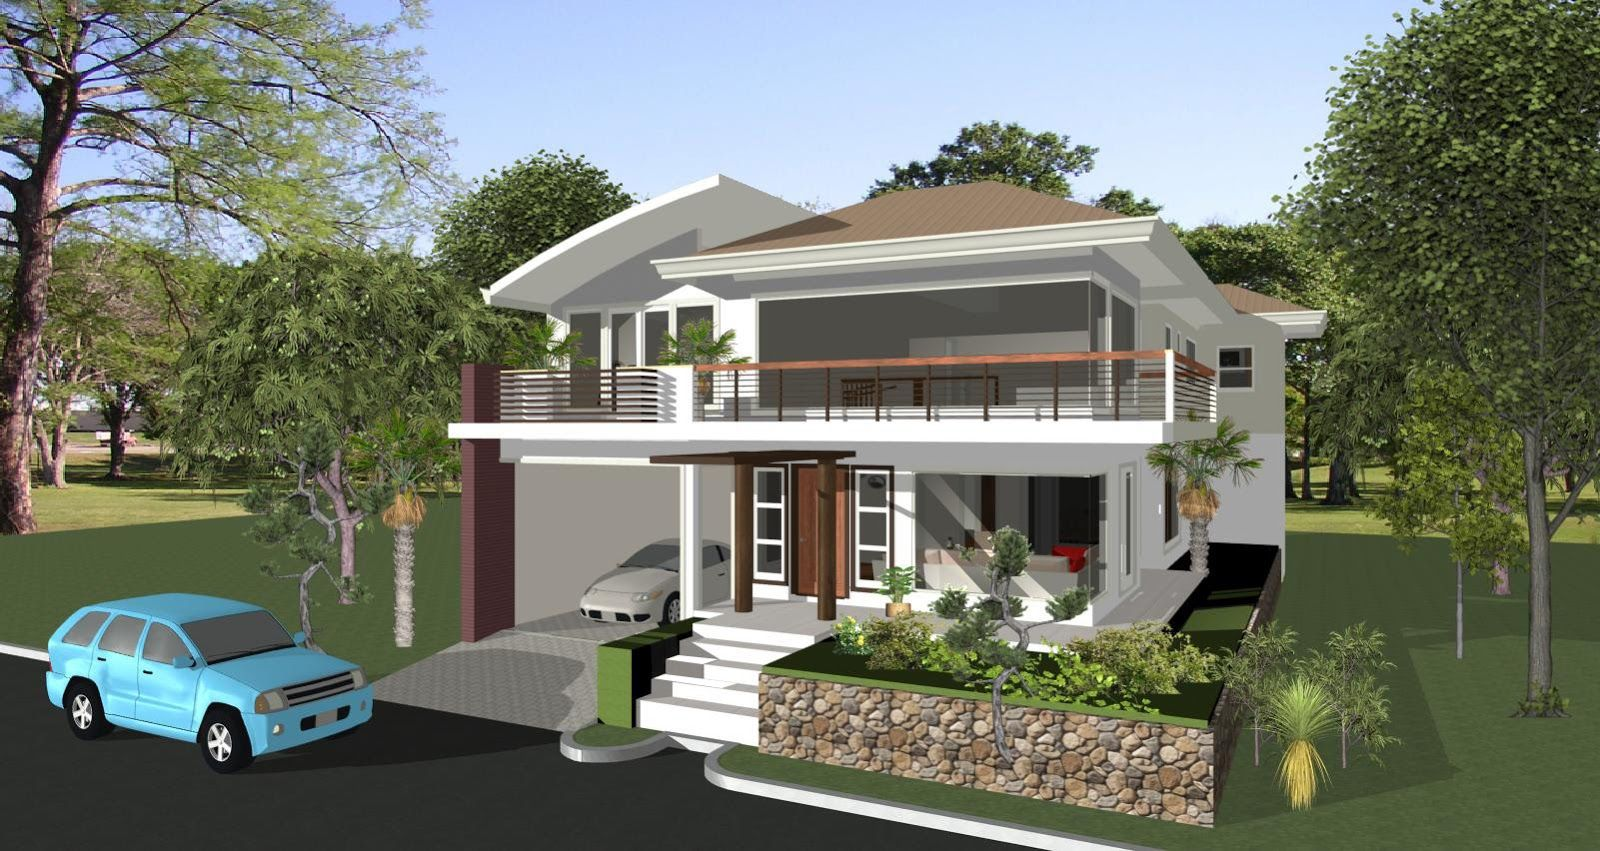 Rezultat Poshuku Zobrazhen Za Zapitom Elevated House Design Philippines House Design Small House Exteriors Modern House Plans